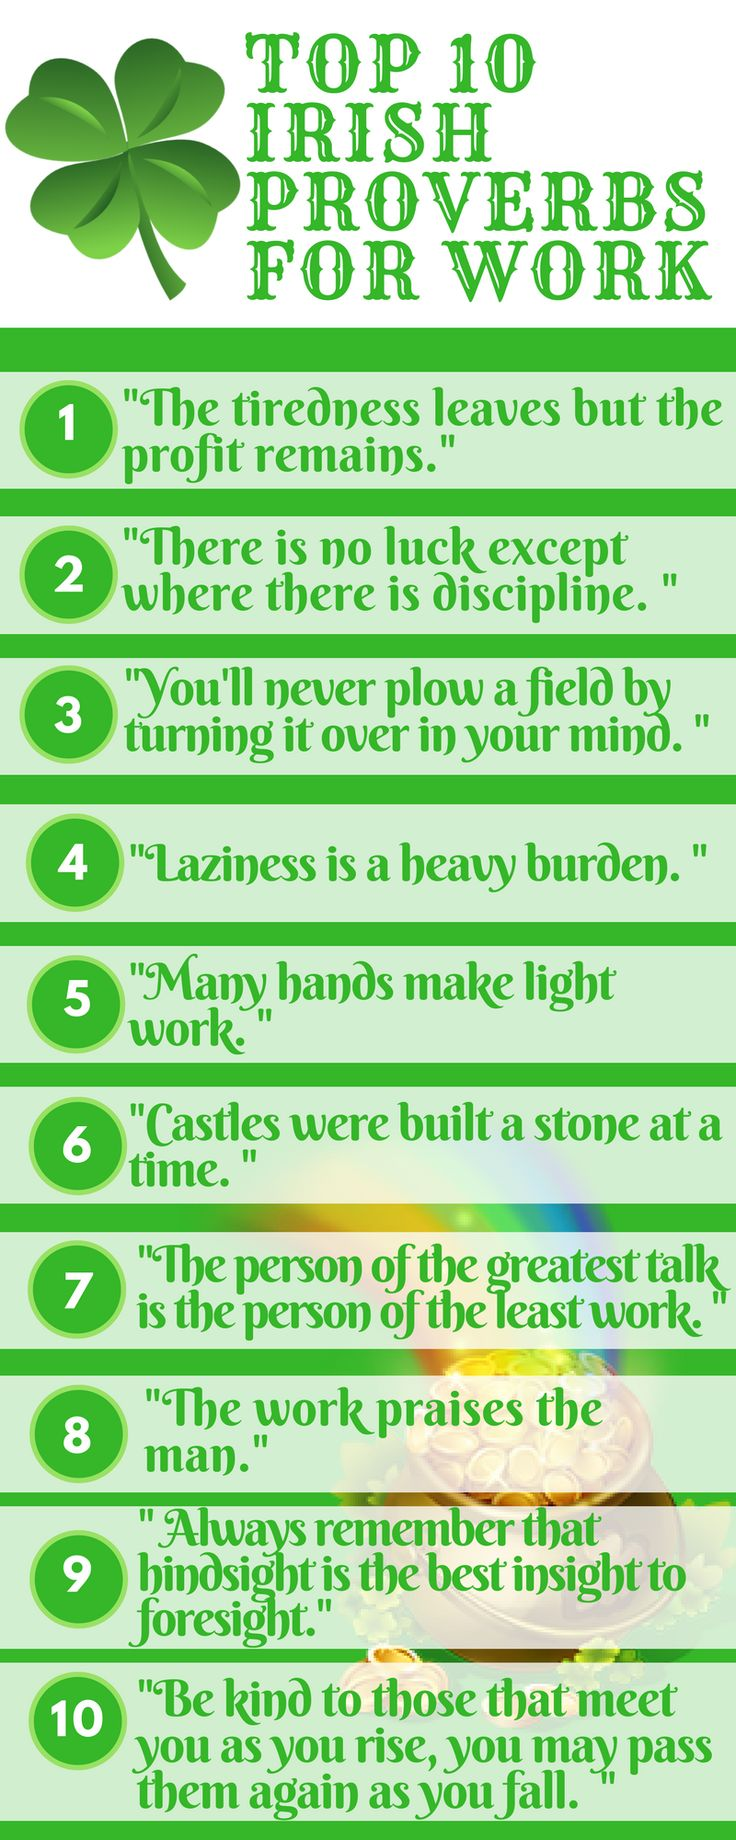 proverbial expressions Proverbs can also give you good example sentences which you can memorize and use as models for building your own sentences the most important english proverbs this is a list of some of the most important and well-known english proverbs.